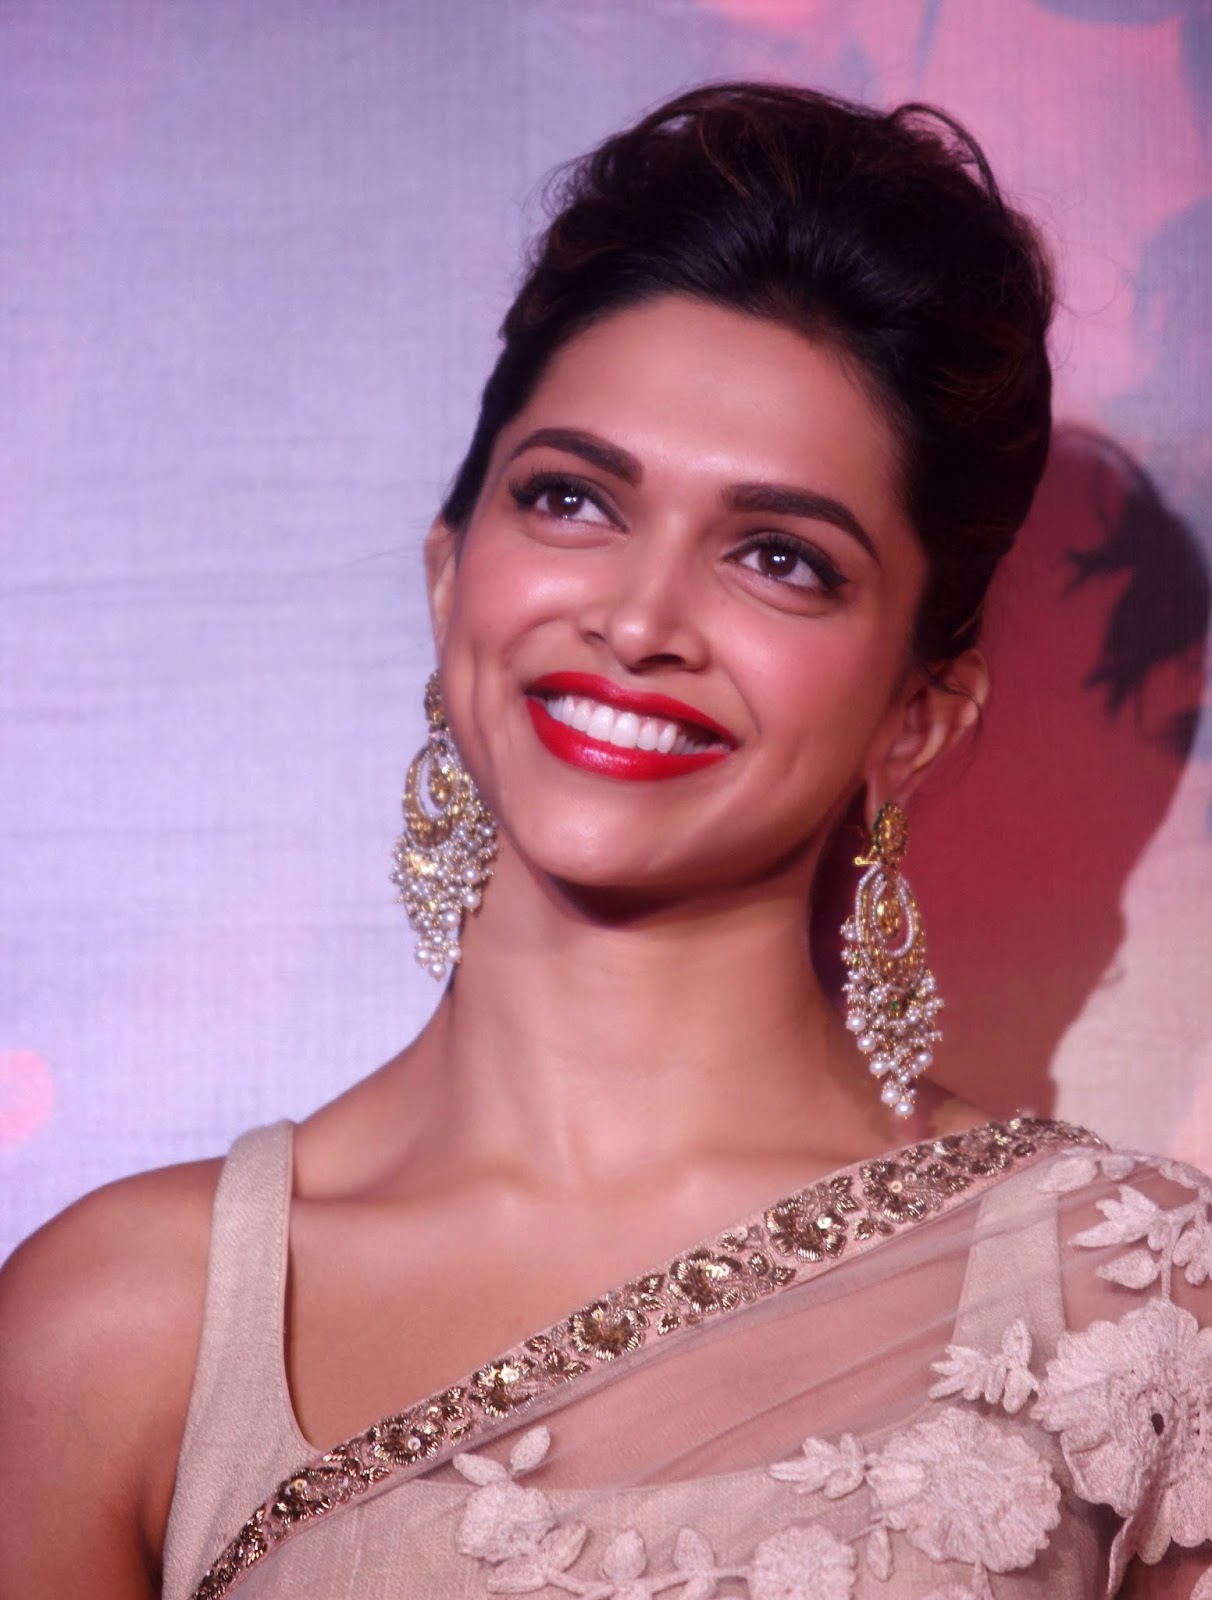 Bollywood Actress Deepika Padukone Big White Teeth Smiling Face Closeup